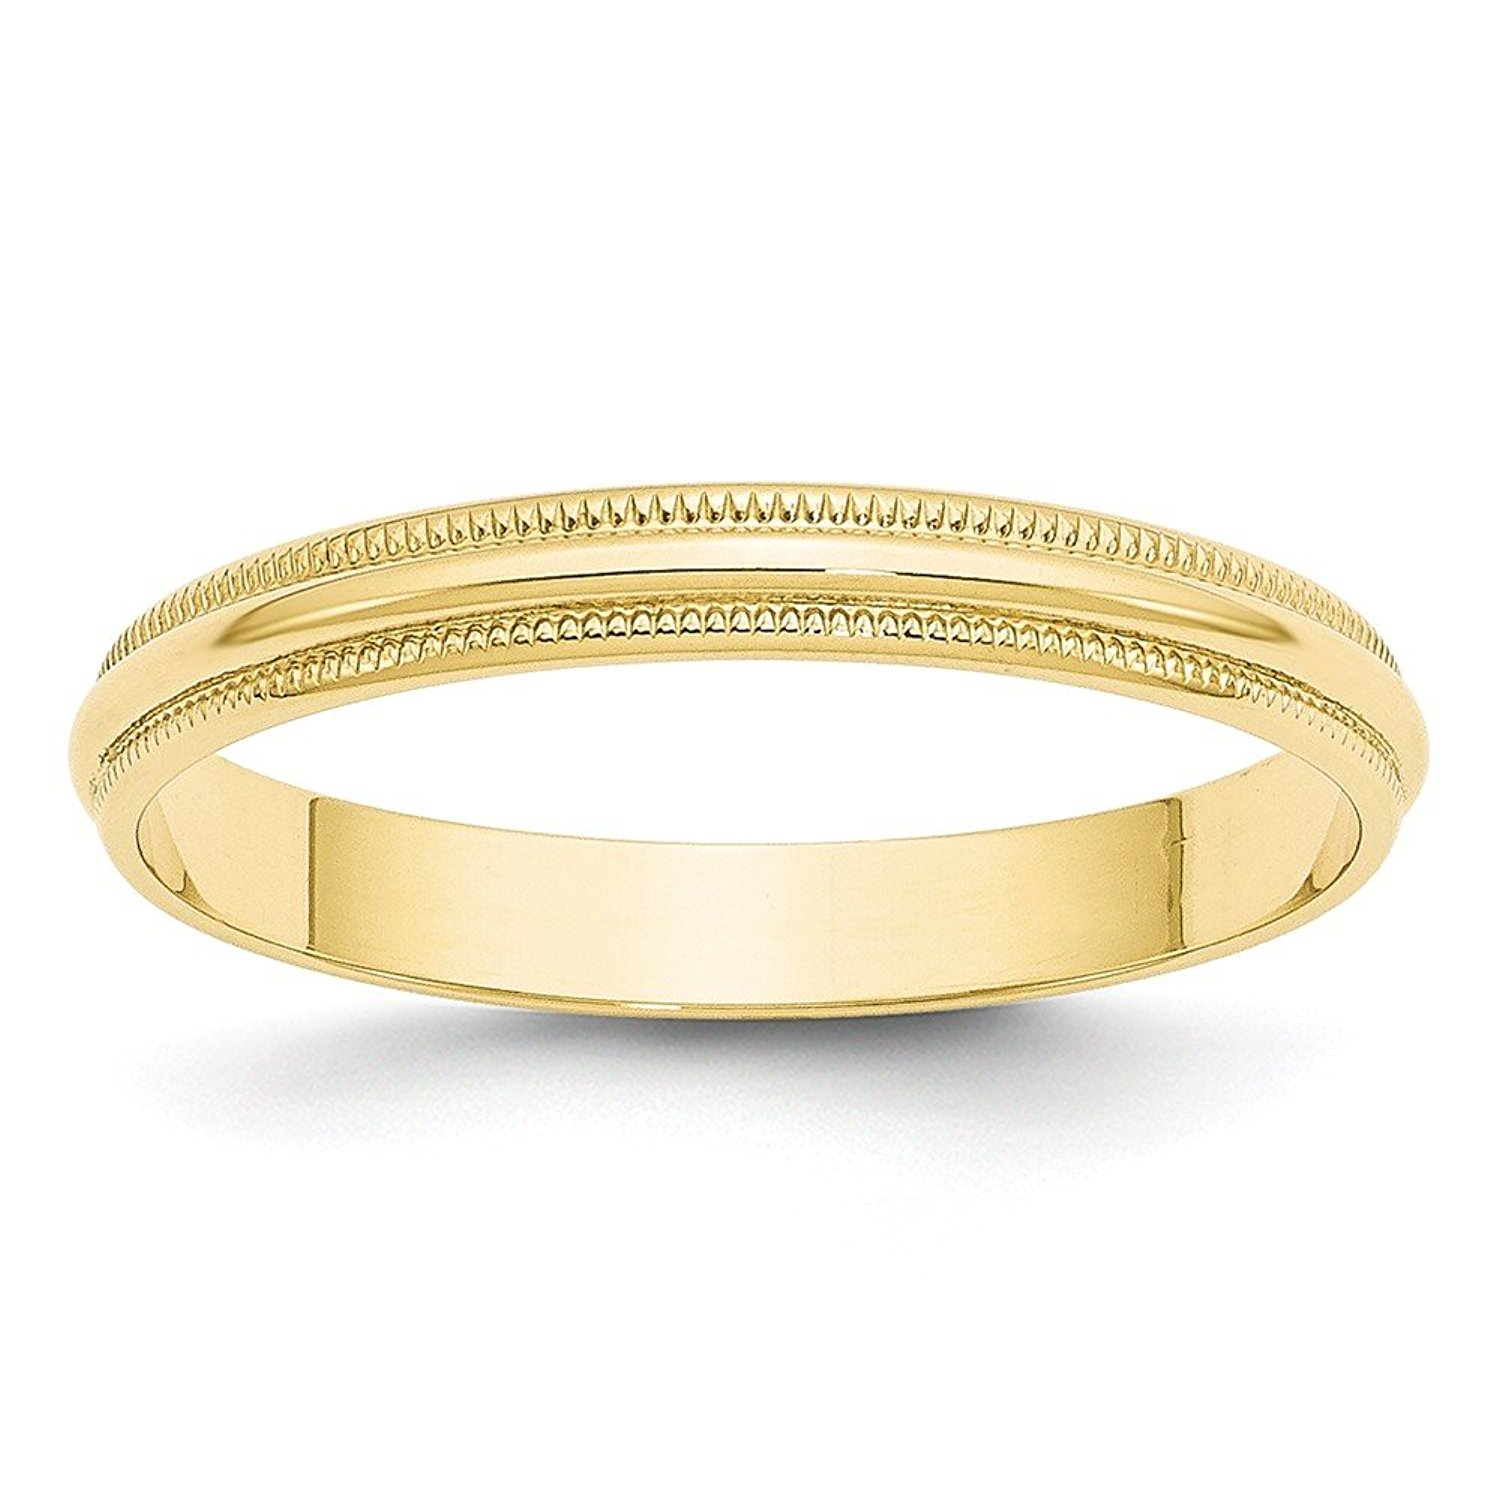 Solid 10k Yellow Gold 3 mm Round Milgrain Wedding Band Ring